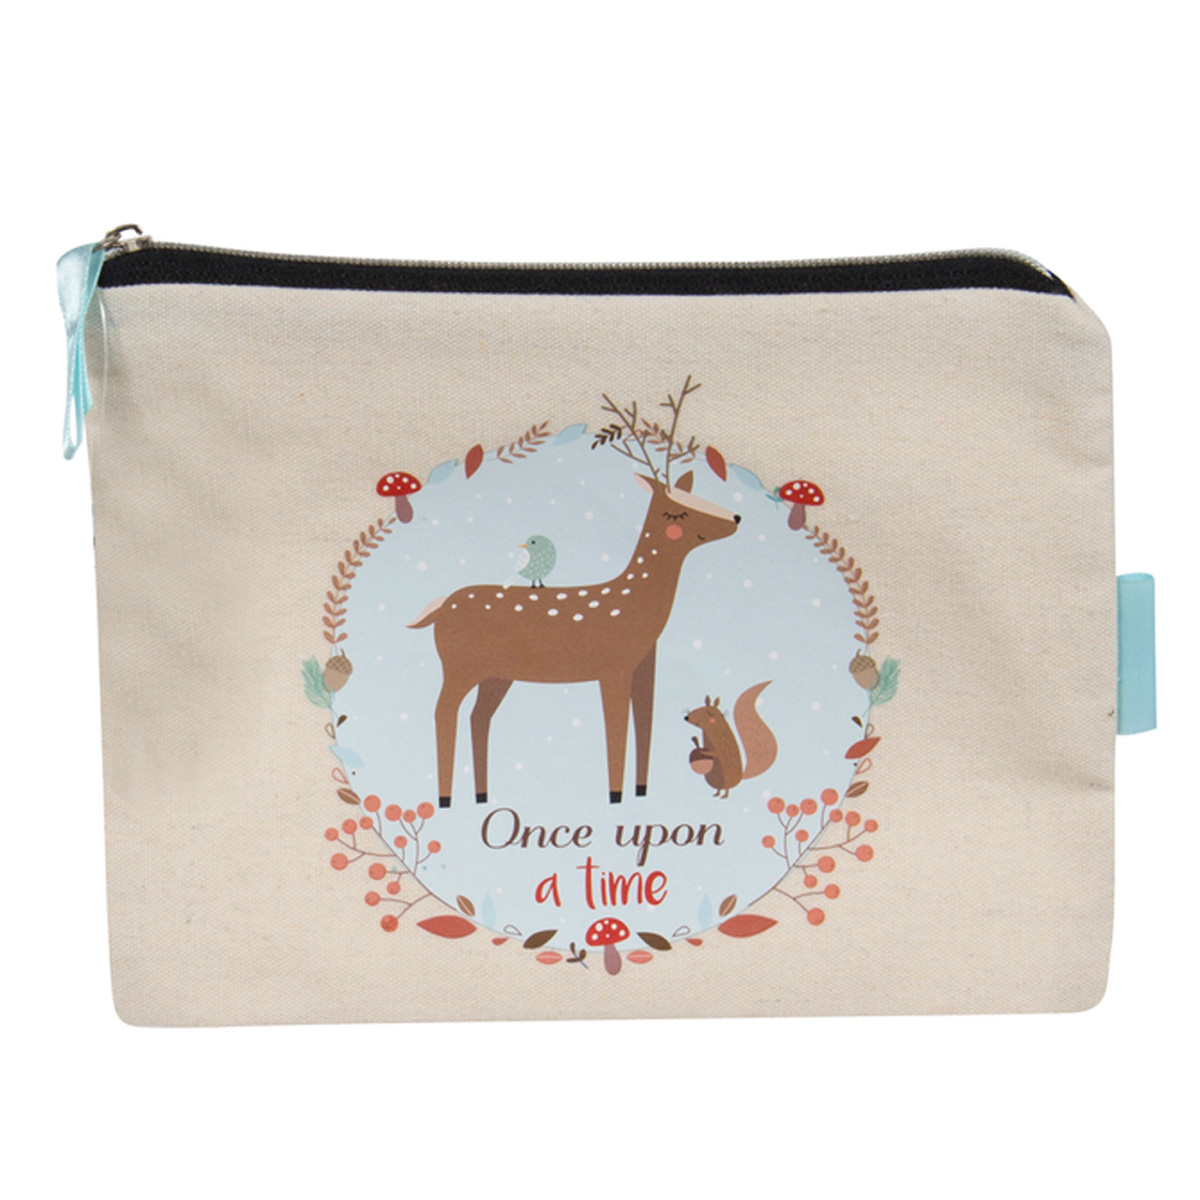 Pochette plate / Trousse à maquillage \'Once upon a time\' beige - 19x135 cm - [R0345]